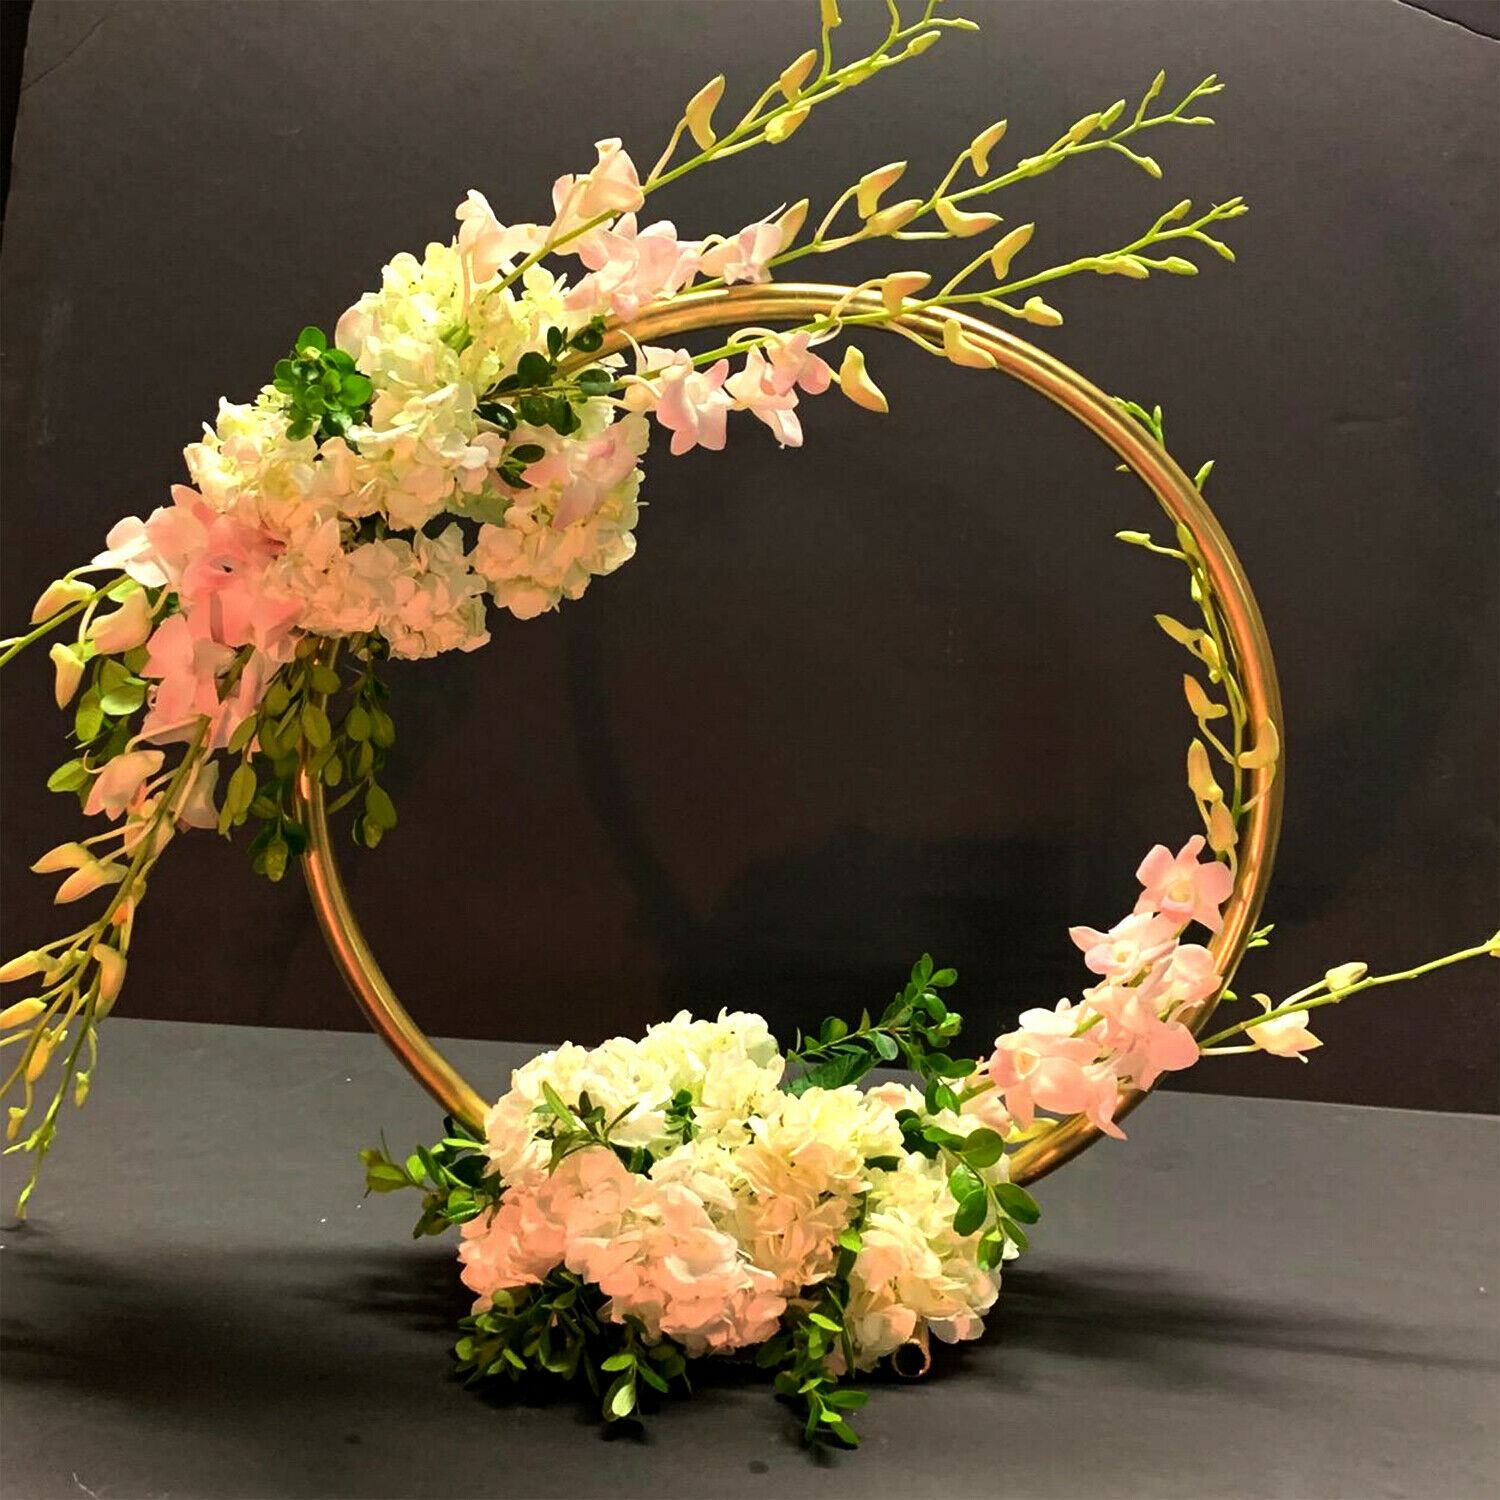 Ev ve Bahçe'ten Düğün Kemerleri'de Wedding Props Birthday Party Decor Wrought Iron Circle Round Ring Arch Backdrop Arch Lawn Artificial Flower Row Stand Wall Shelf title=